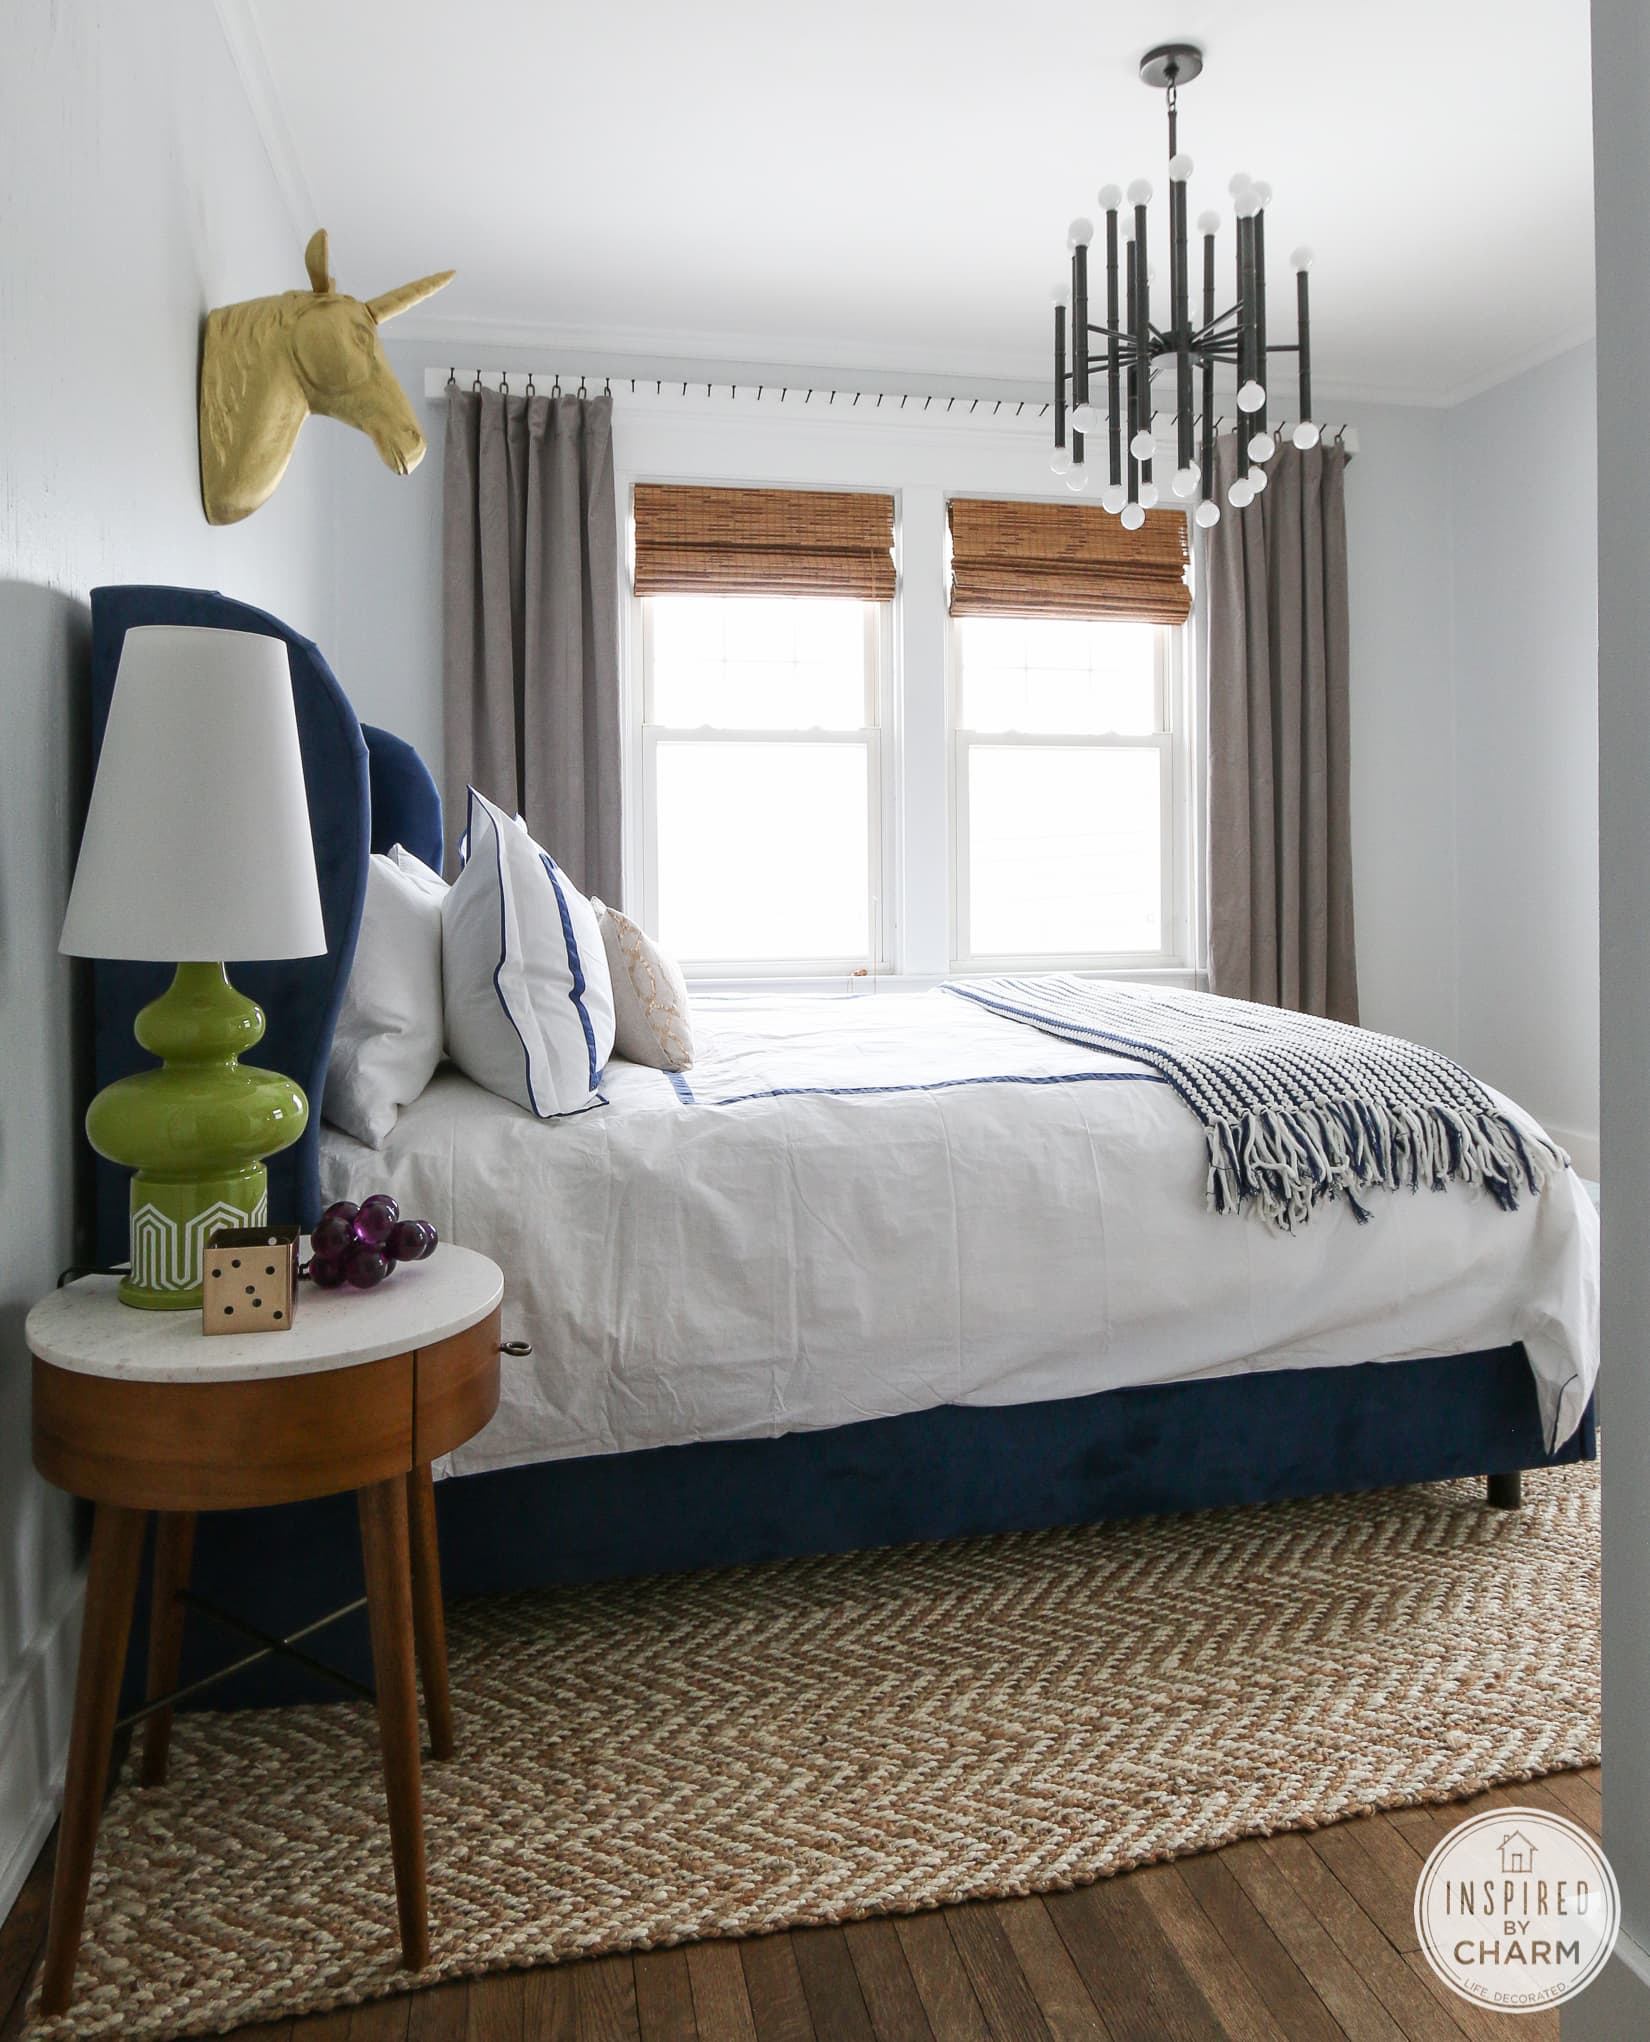 master bedroom update inspired by charm